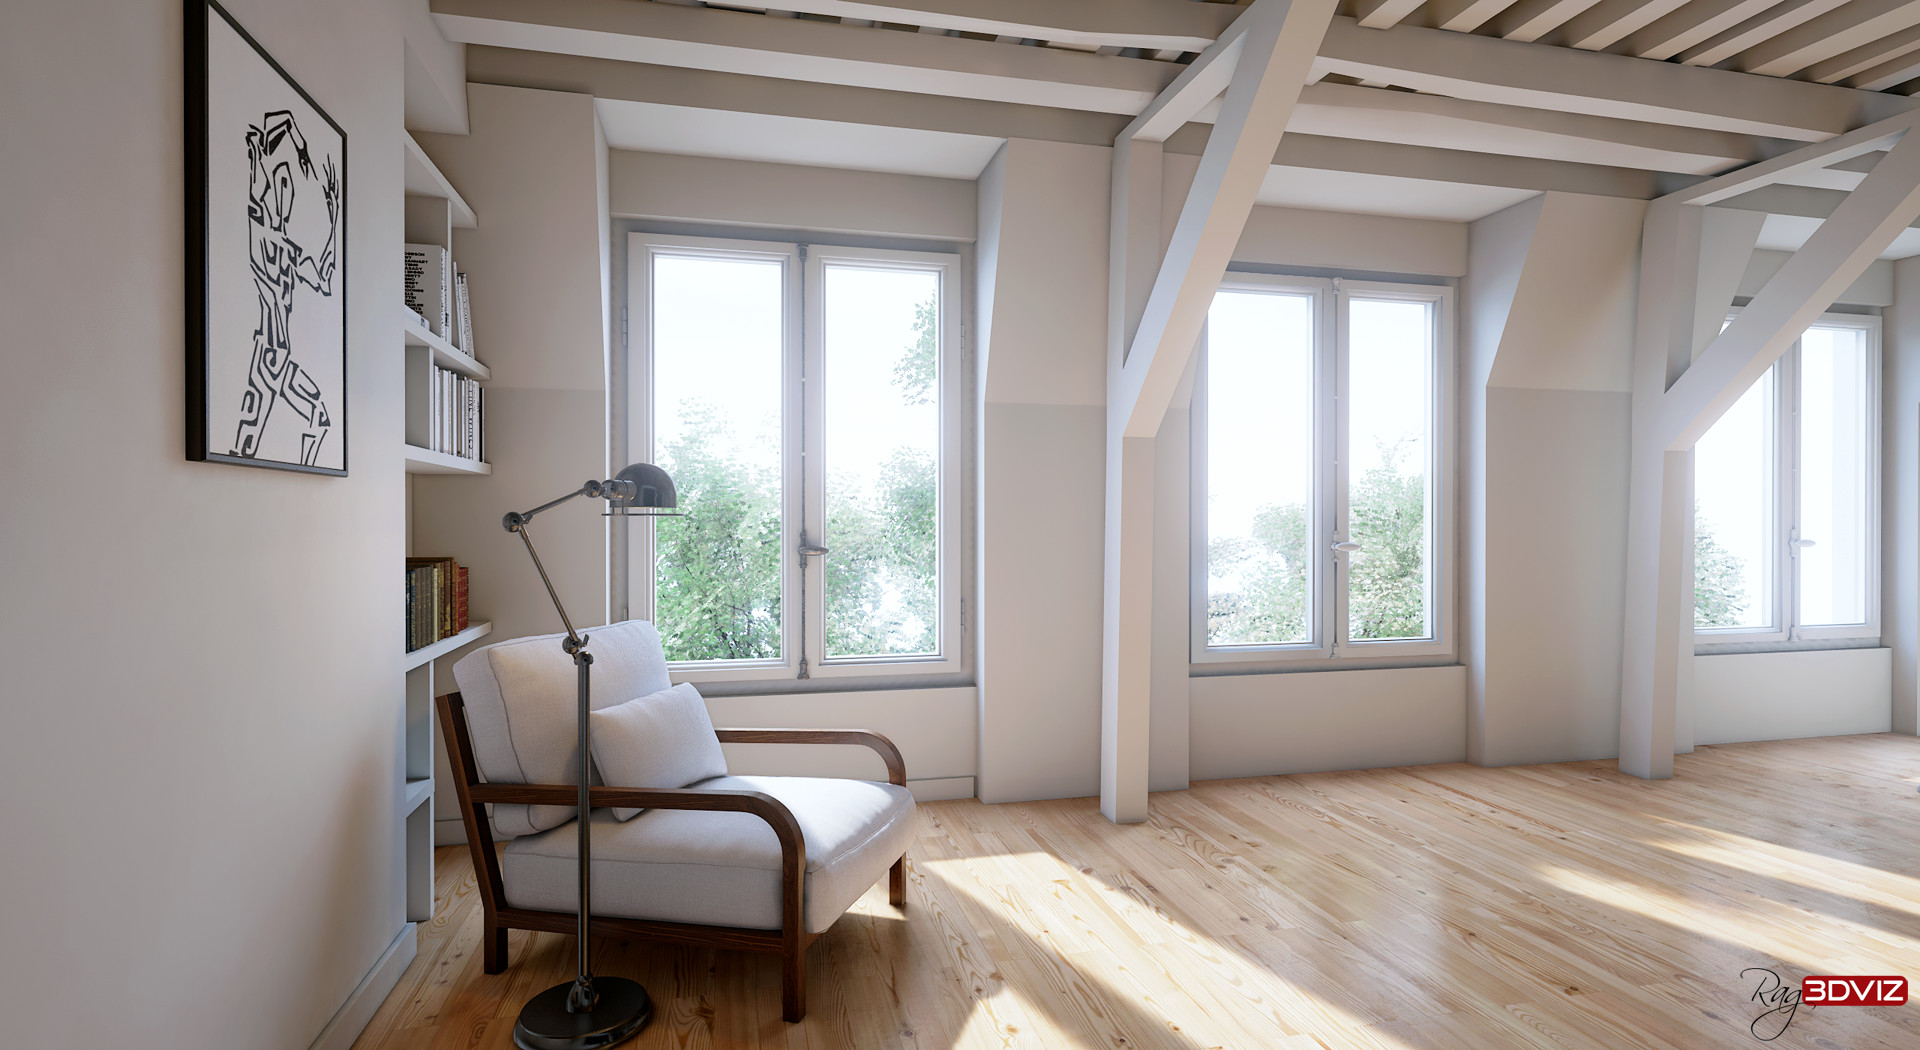 Learn interior design basics basic interior in unreal for Learn interior design